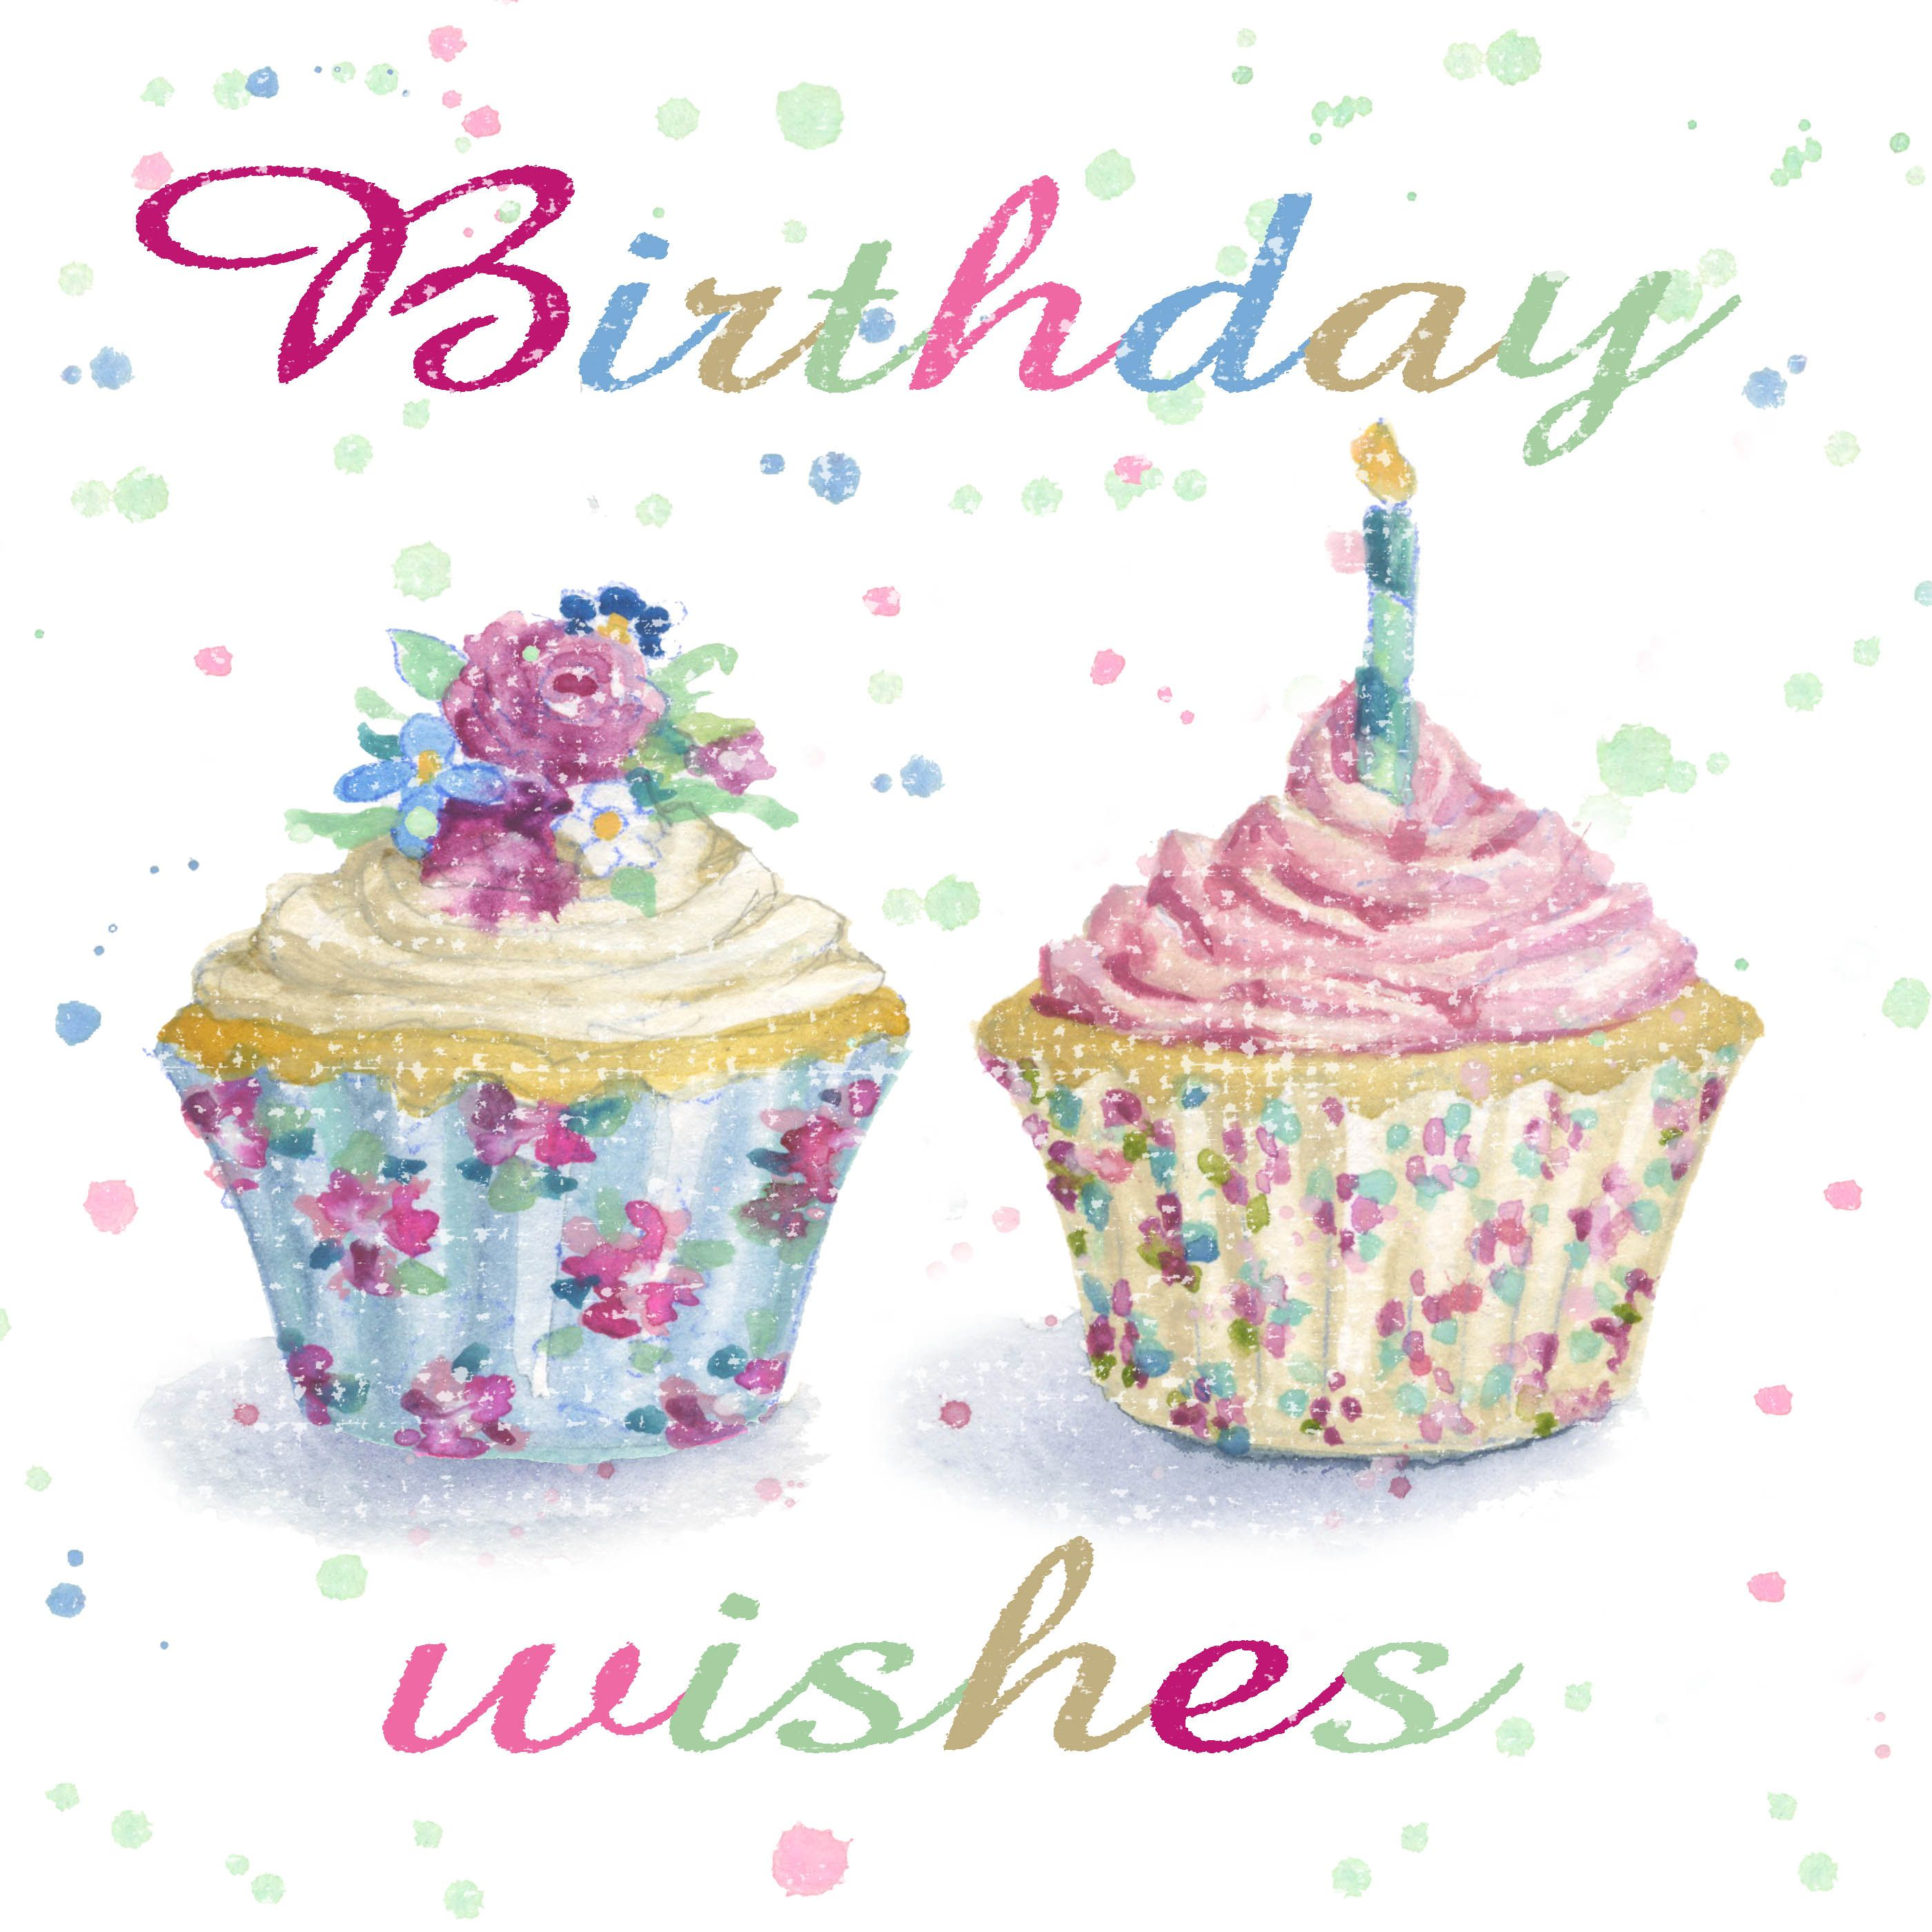 Birthday cup cakes greeting card design wensen pinterest birthday cup cakes greeting card design kristyandbryce Gallery